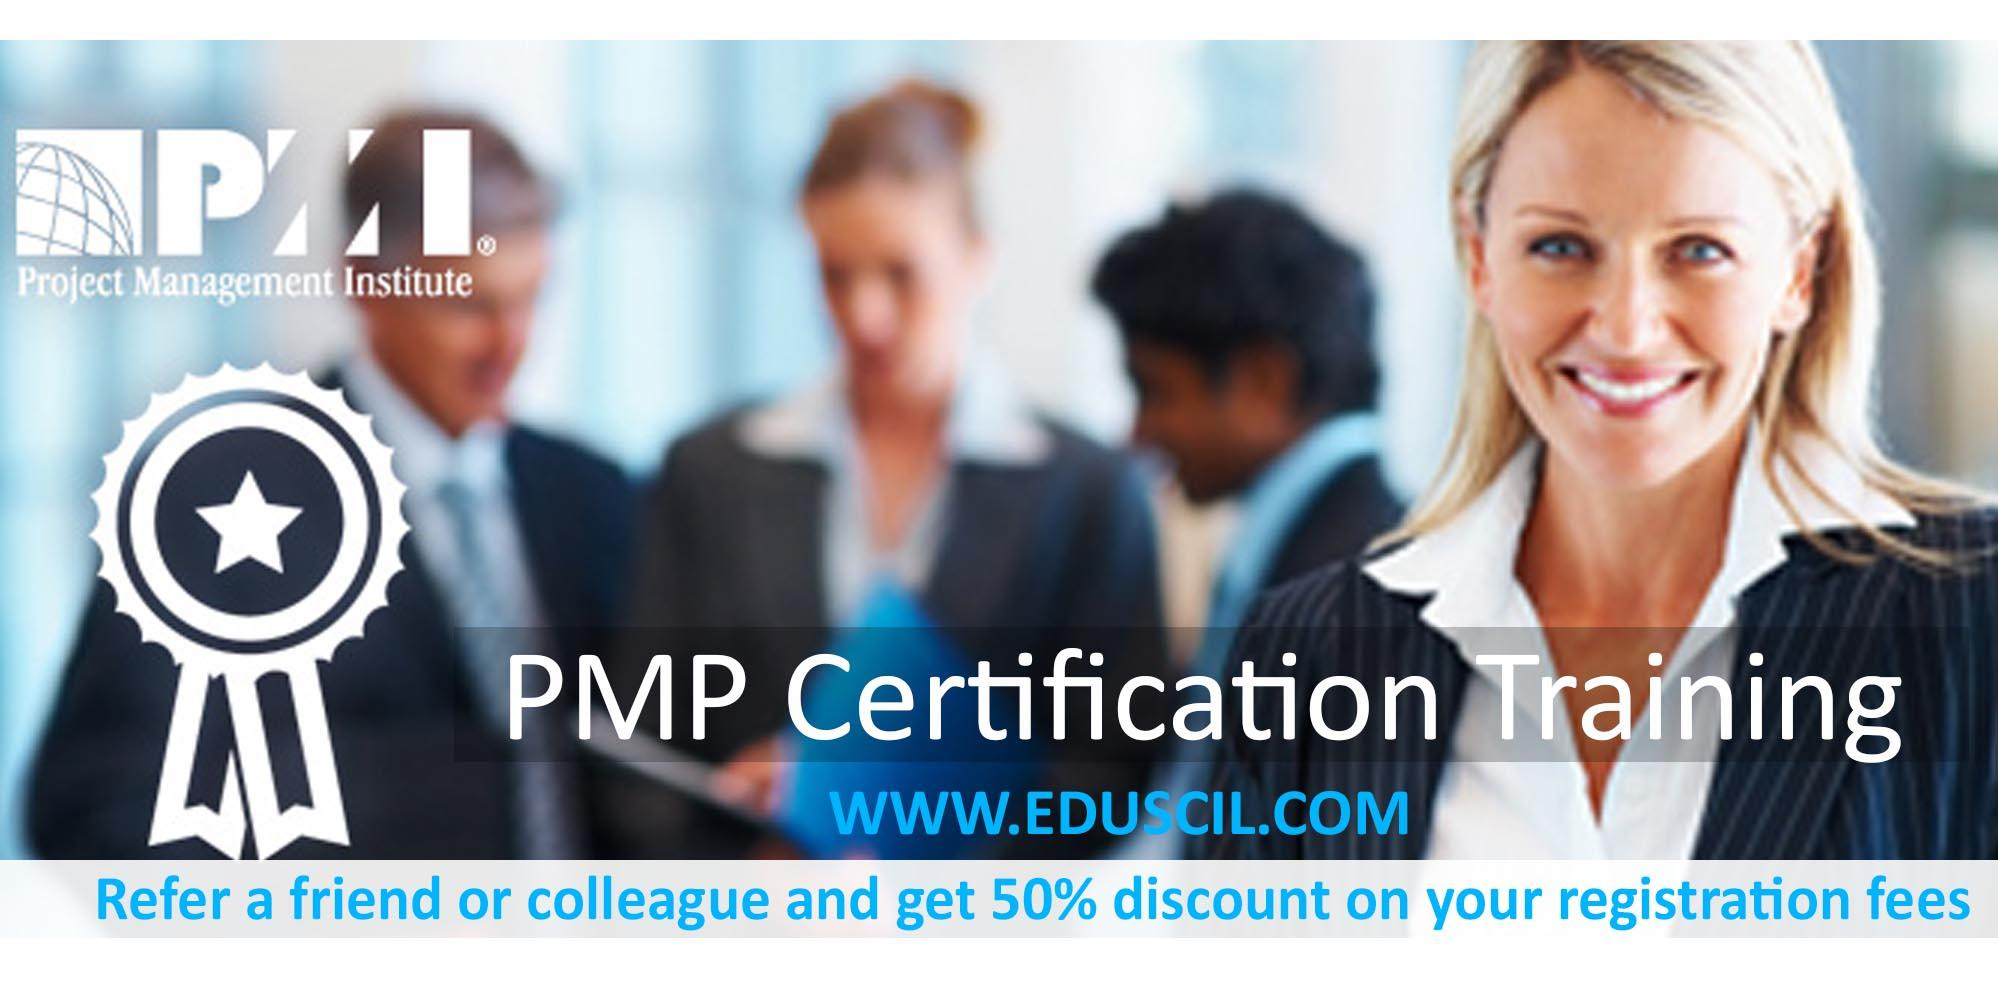 PMP® Certification Training Course in St. Louis, MO- USA | Eduscil